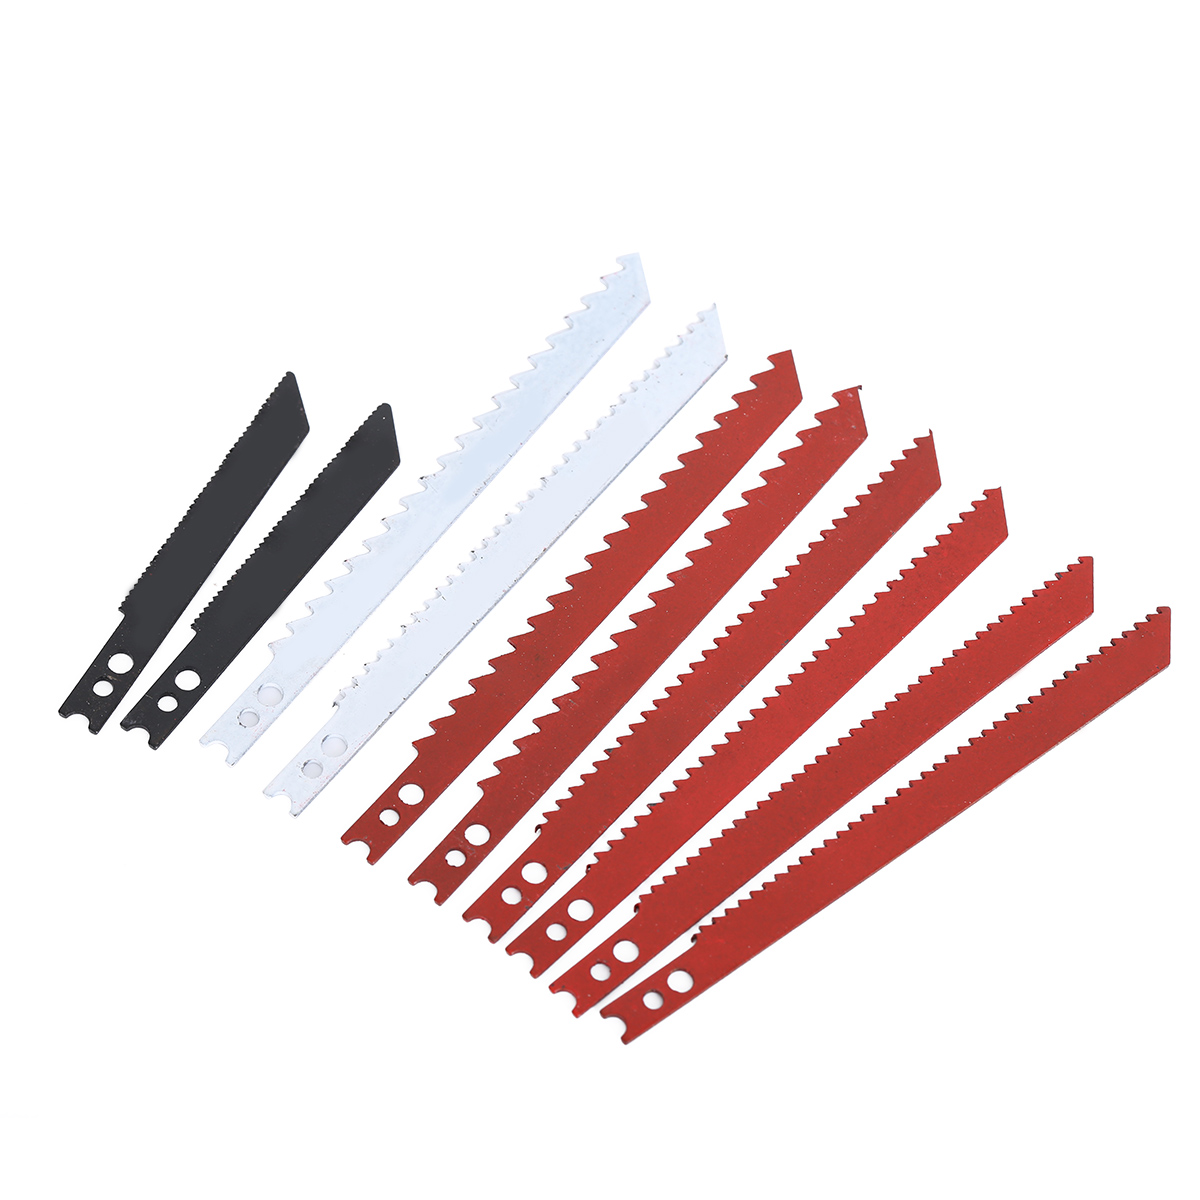 10pcs U-shank Jig Saw Blades Set For Black And Decker Jigsaw Metal Plastic Wood Blades